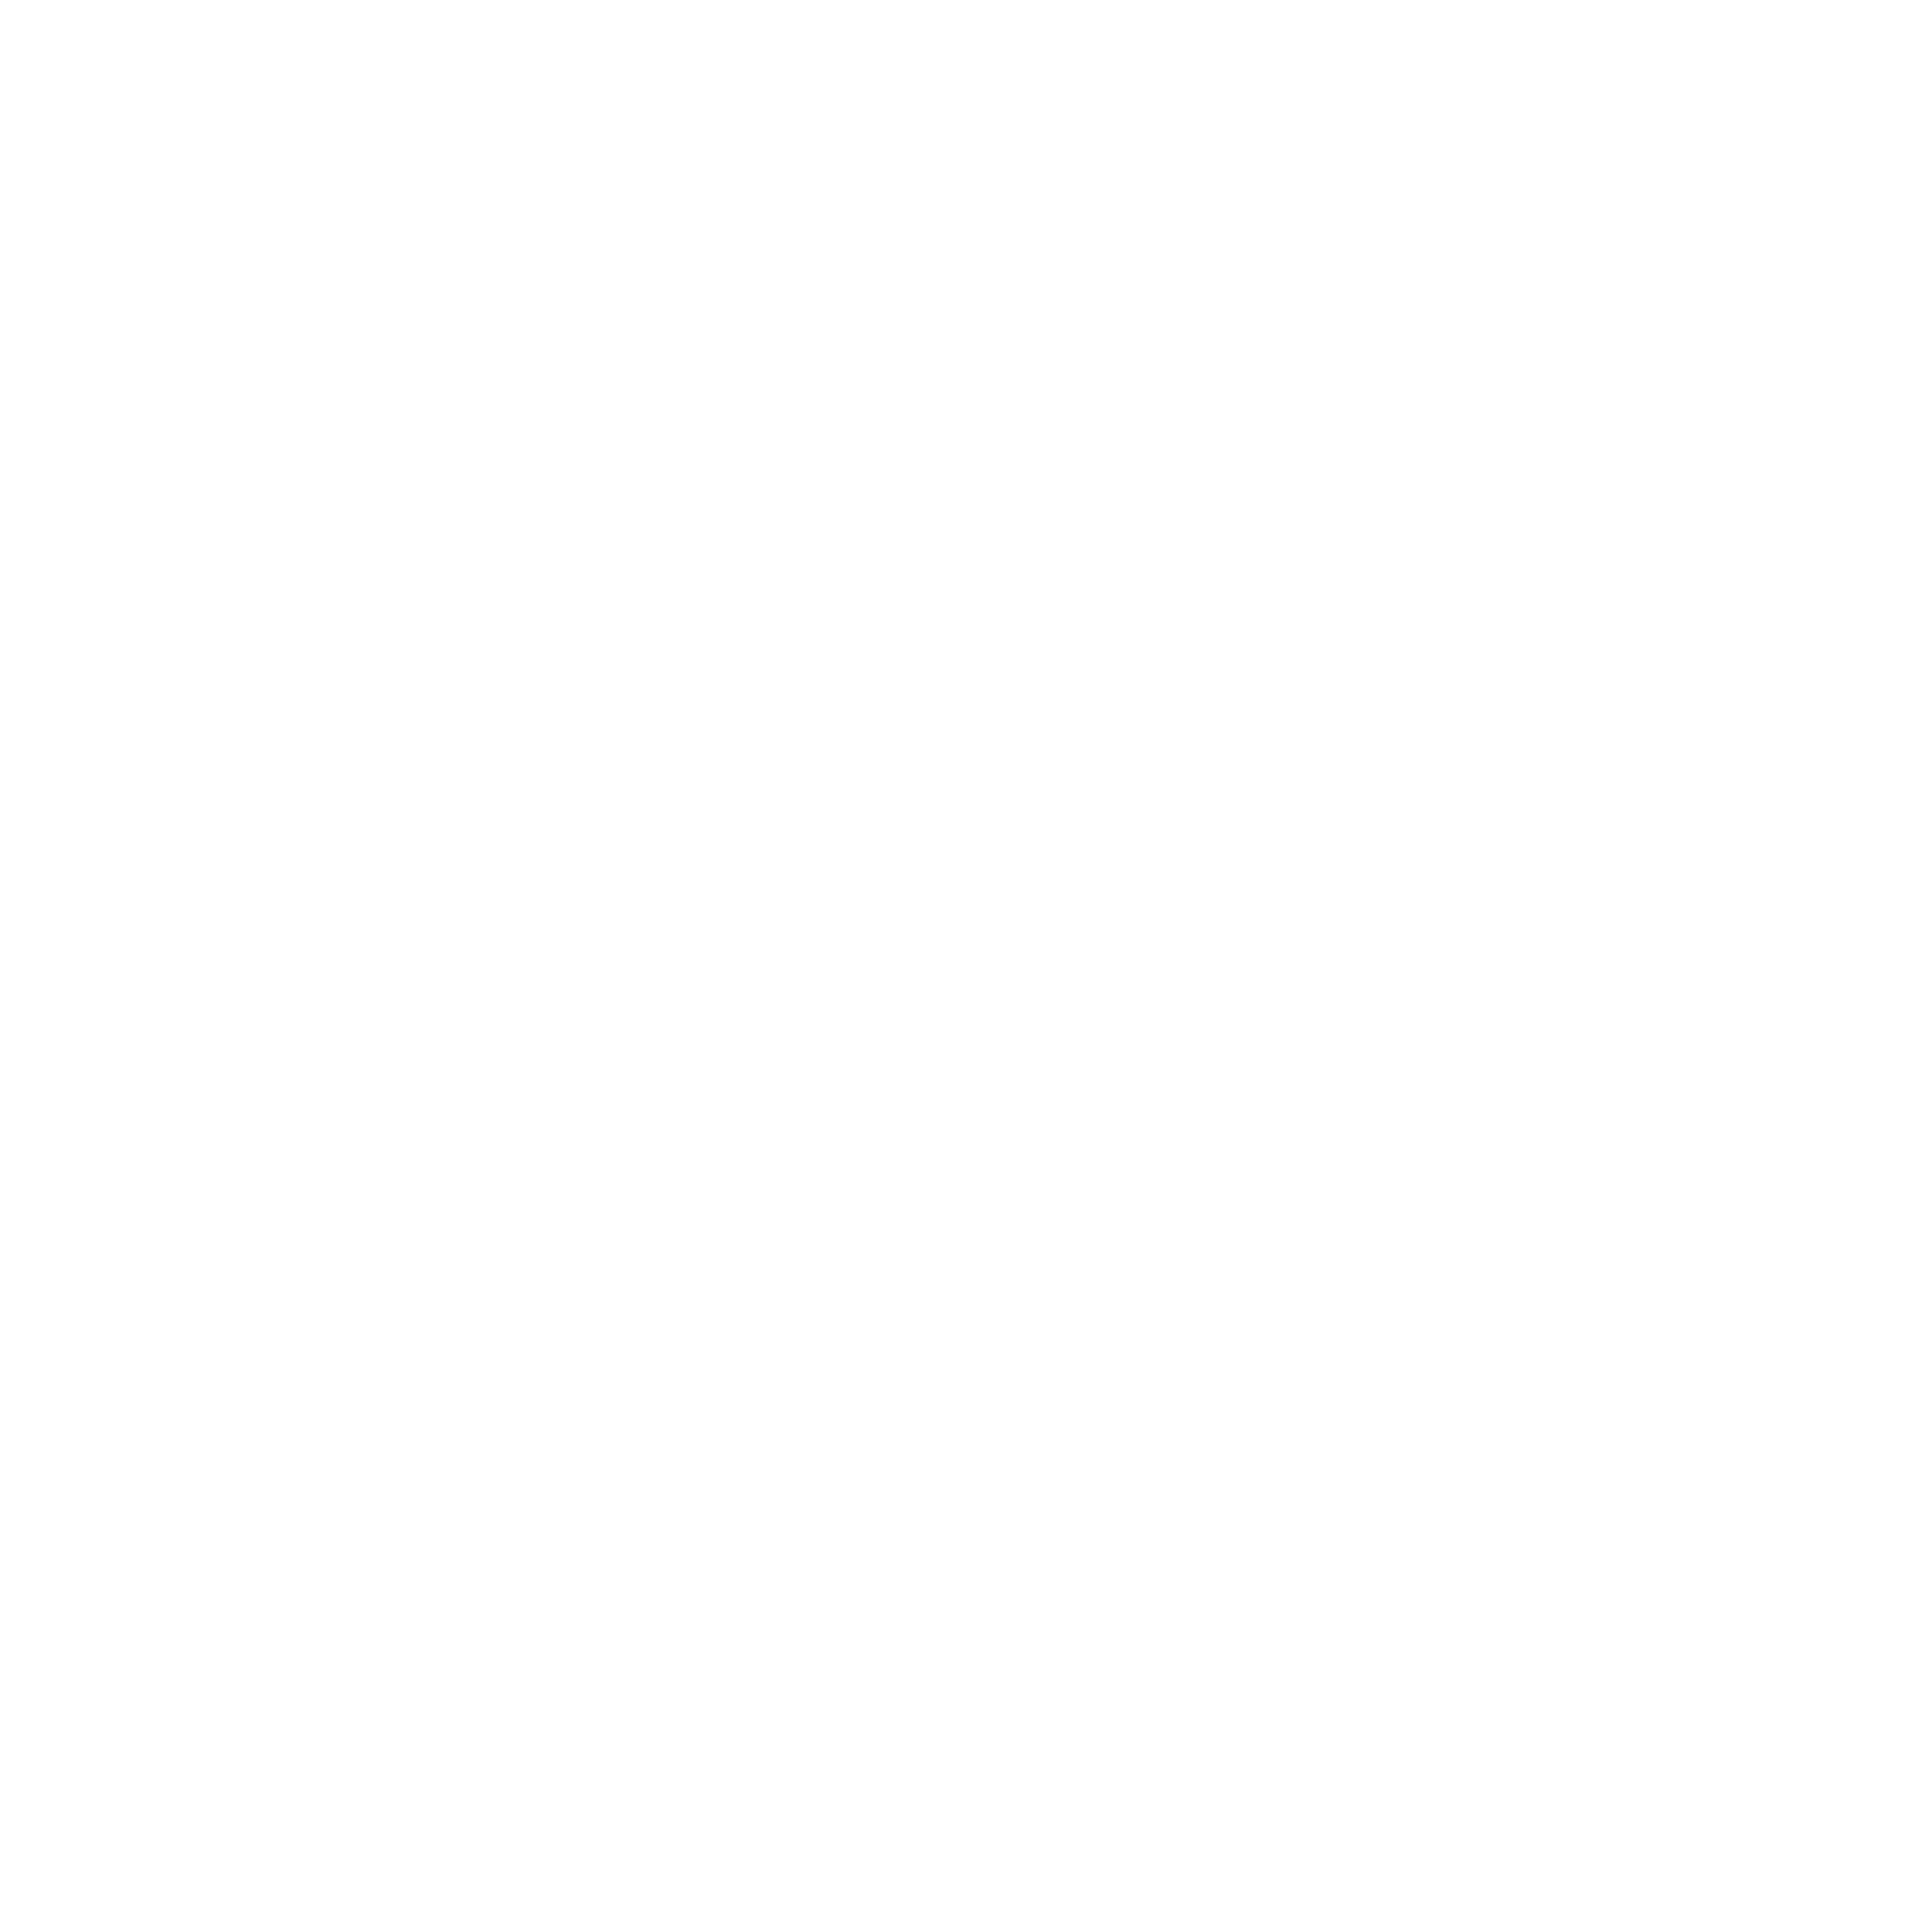 east-dunbartonshire-council-logo